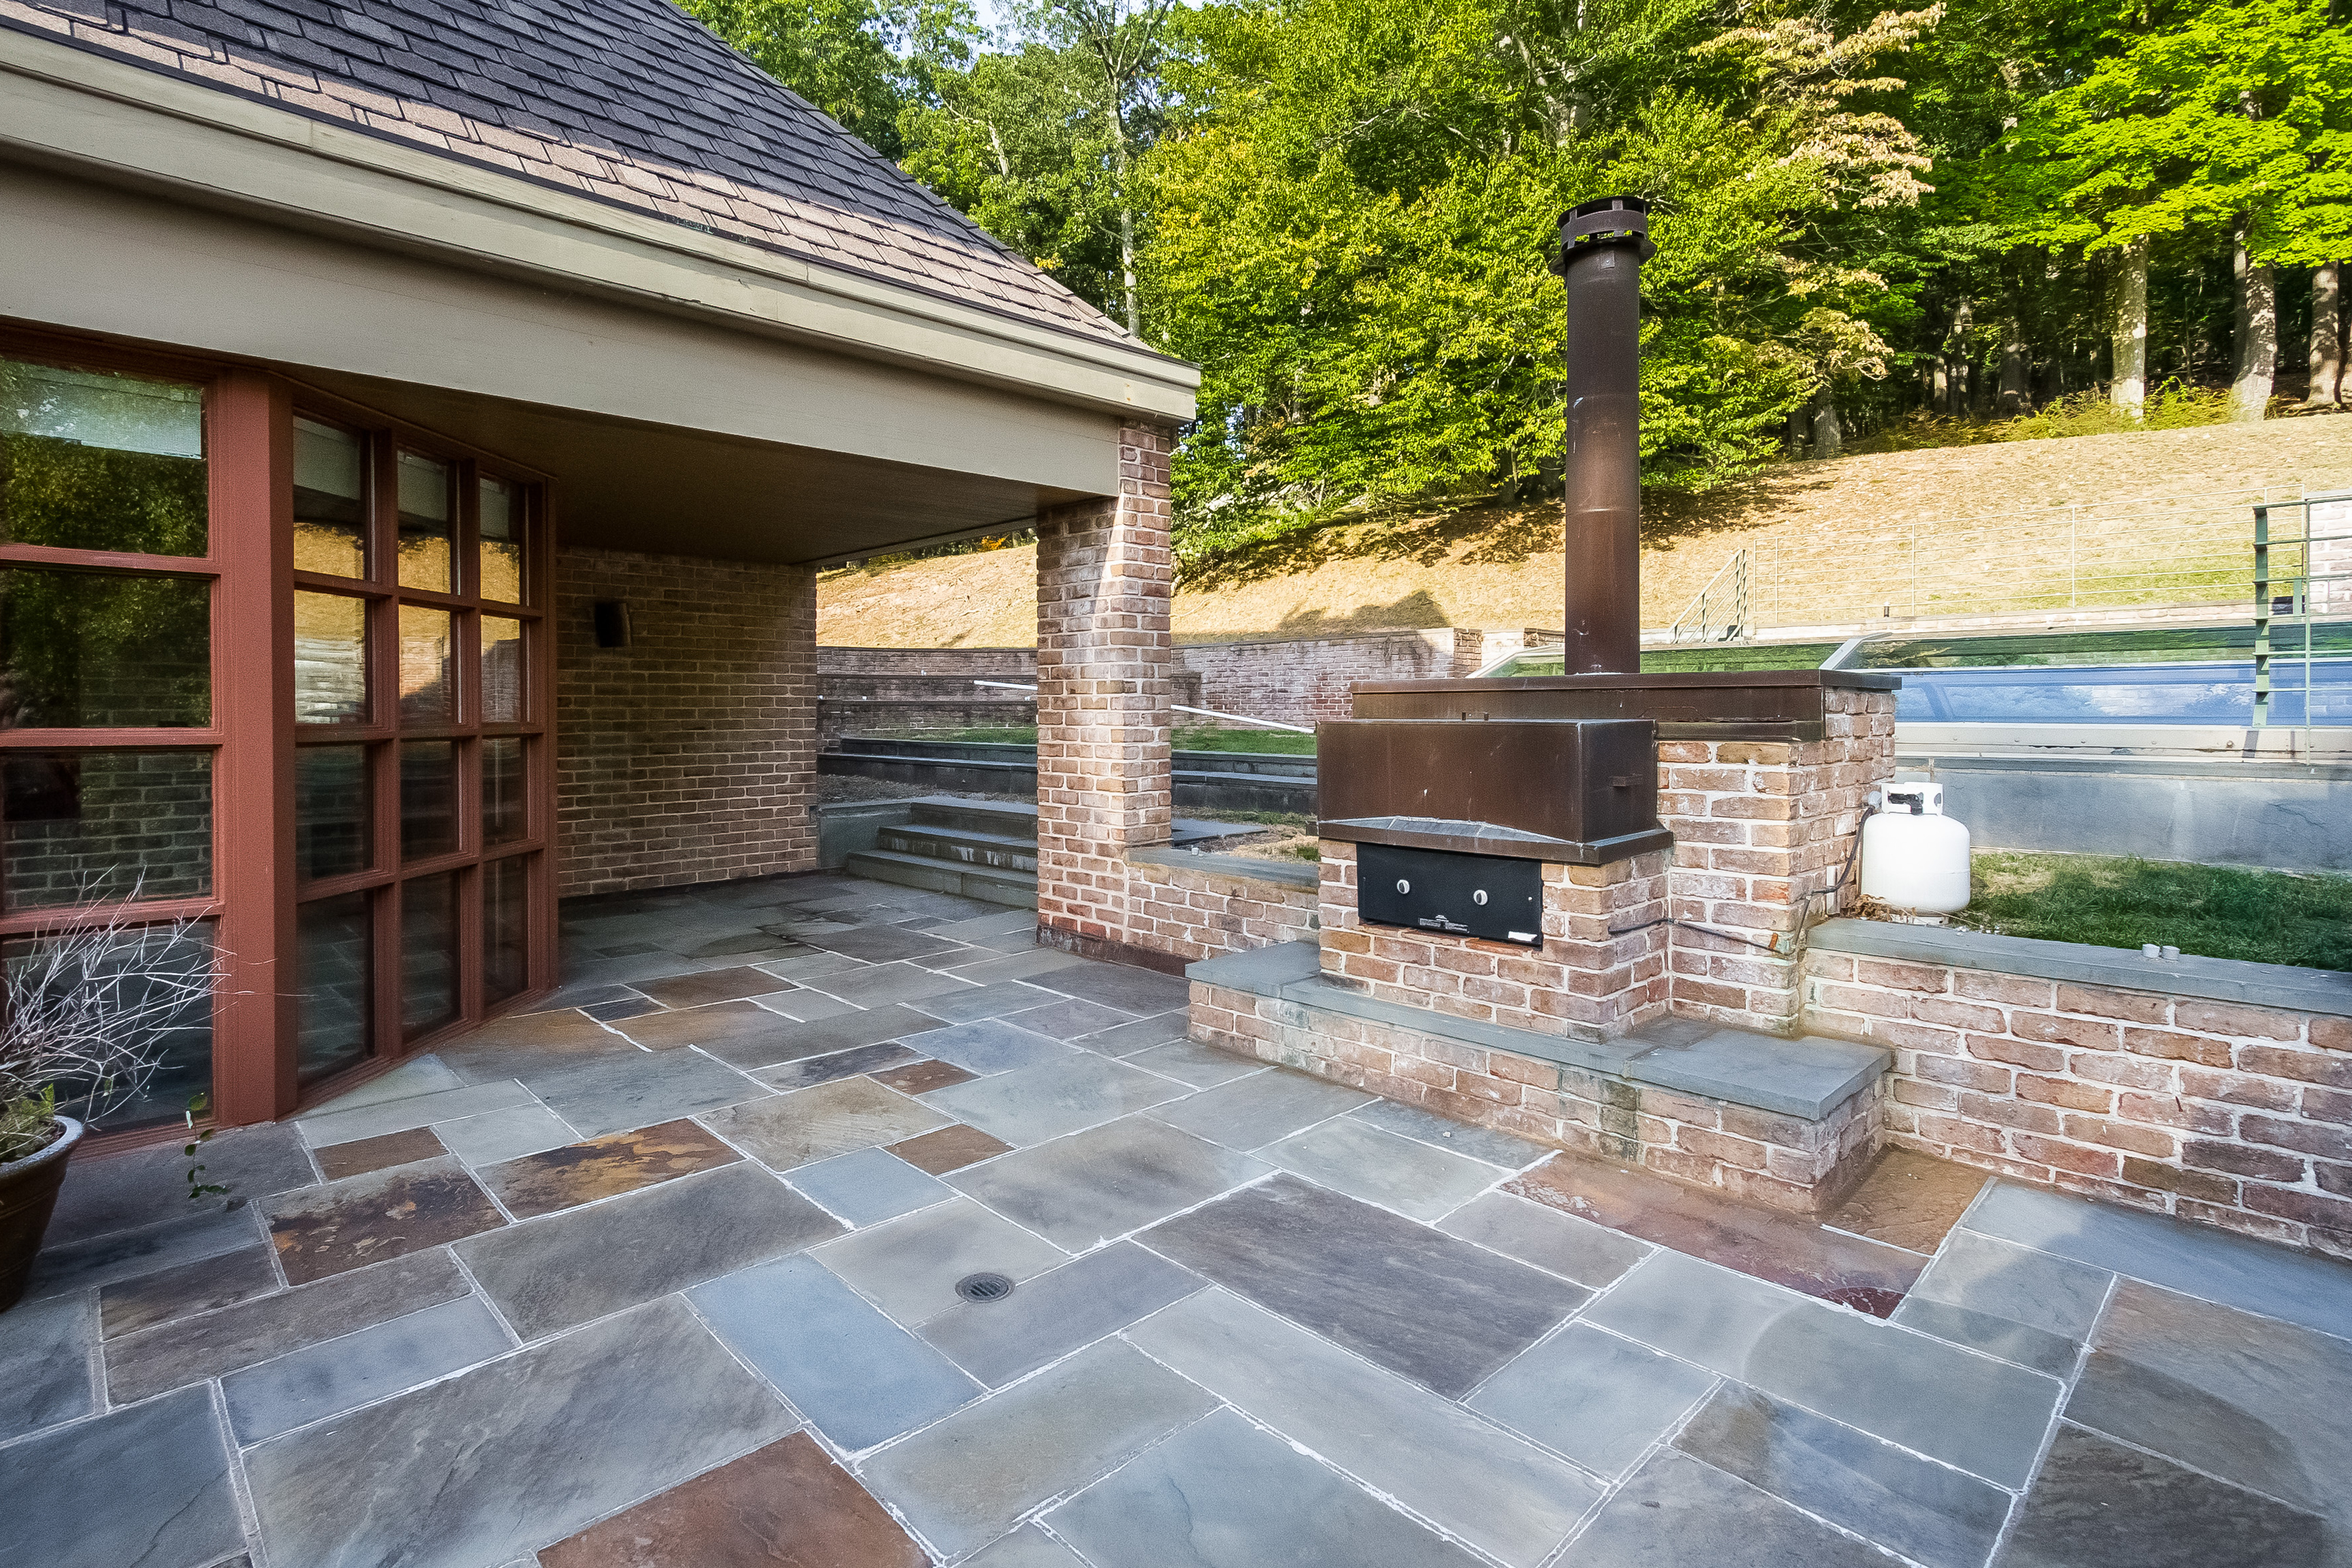 070-Patio-4840794-large